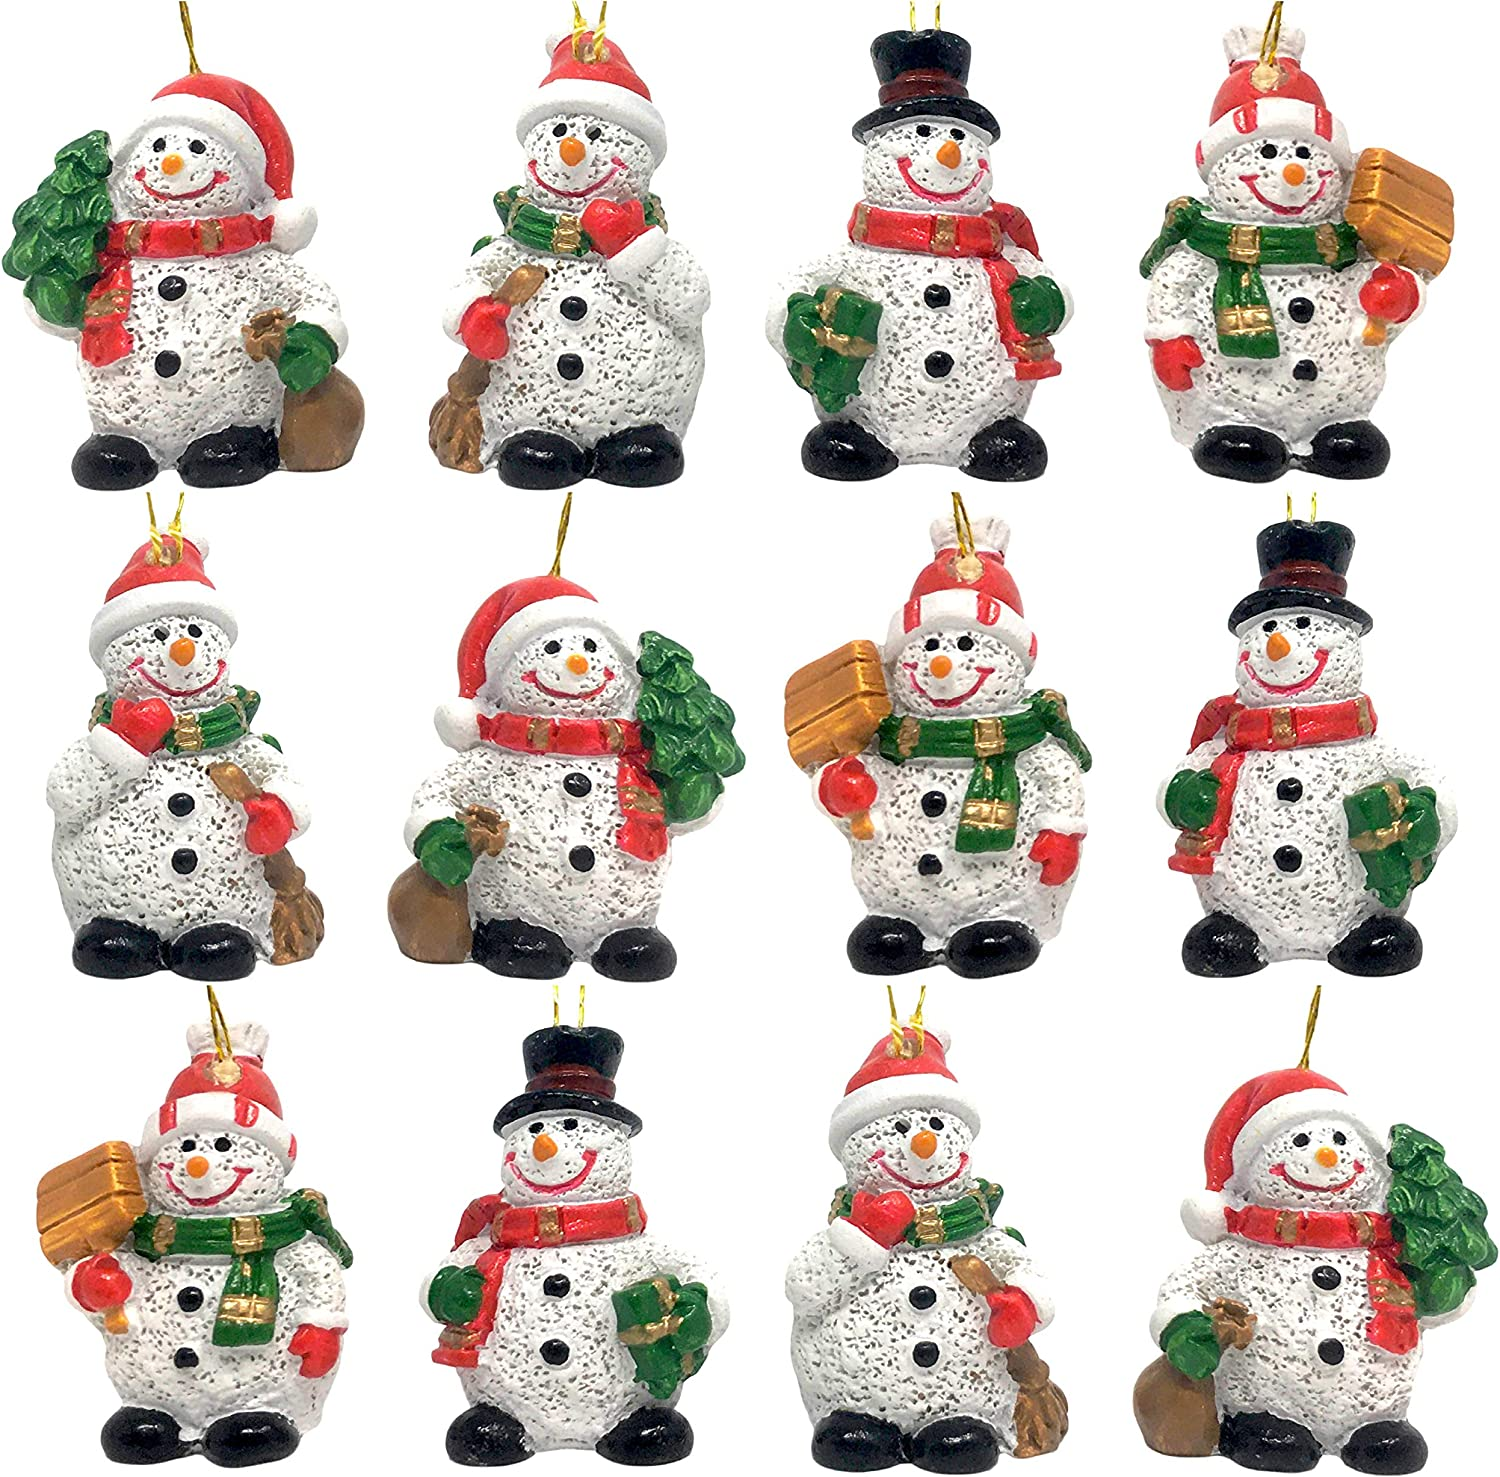 Amazon Com Banberry Designs Mini Snowman Hanging Ornaments Set Of 12 Miniature Snowmen With Red Green And Gold Accents Four Assorted Designs Approx 1 25 Inches Tall Kitchen Dining